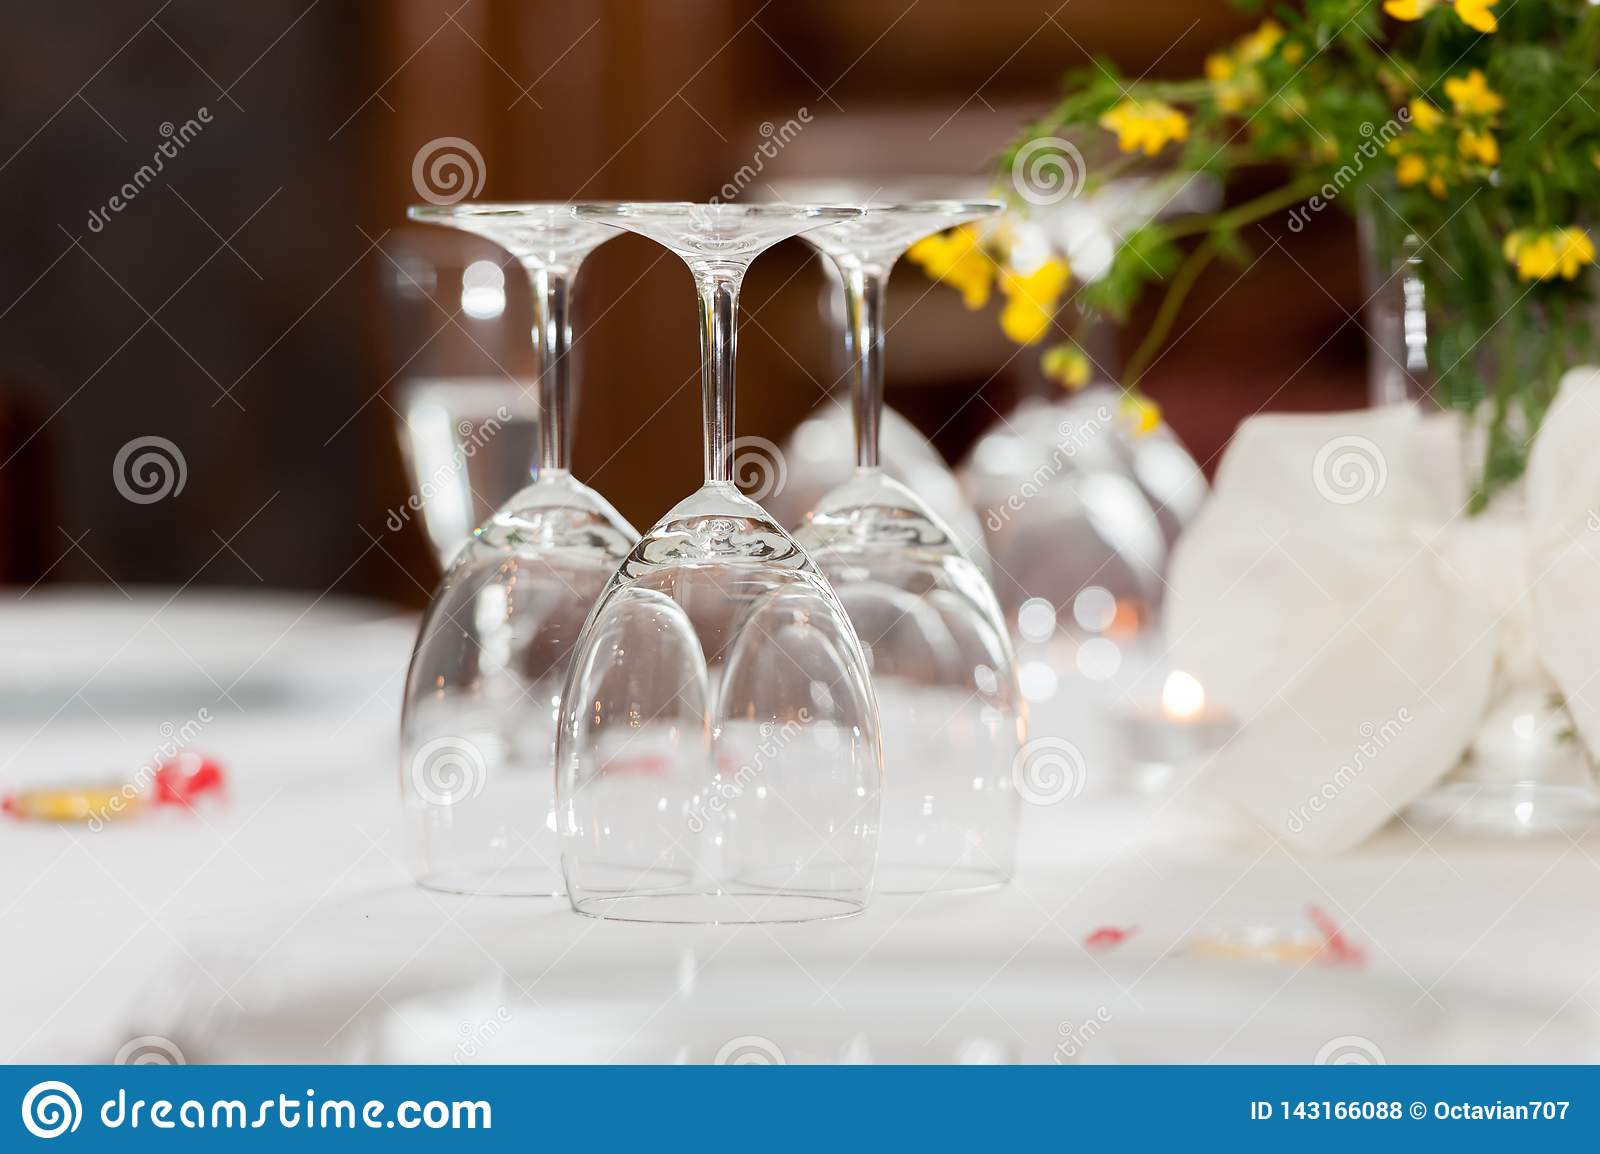 Empty glasses on table in restaurant with floral decoration